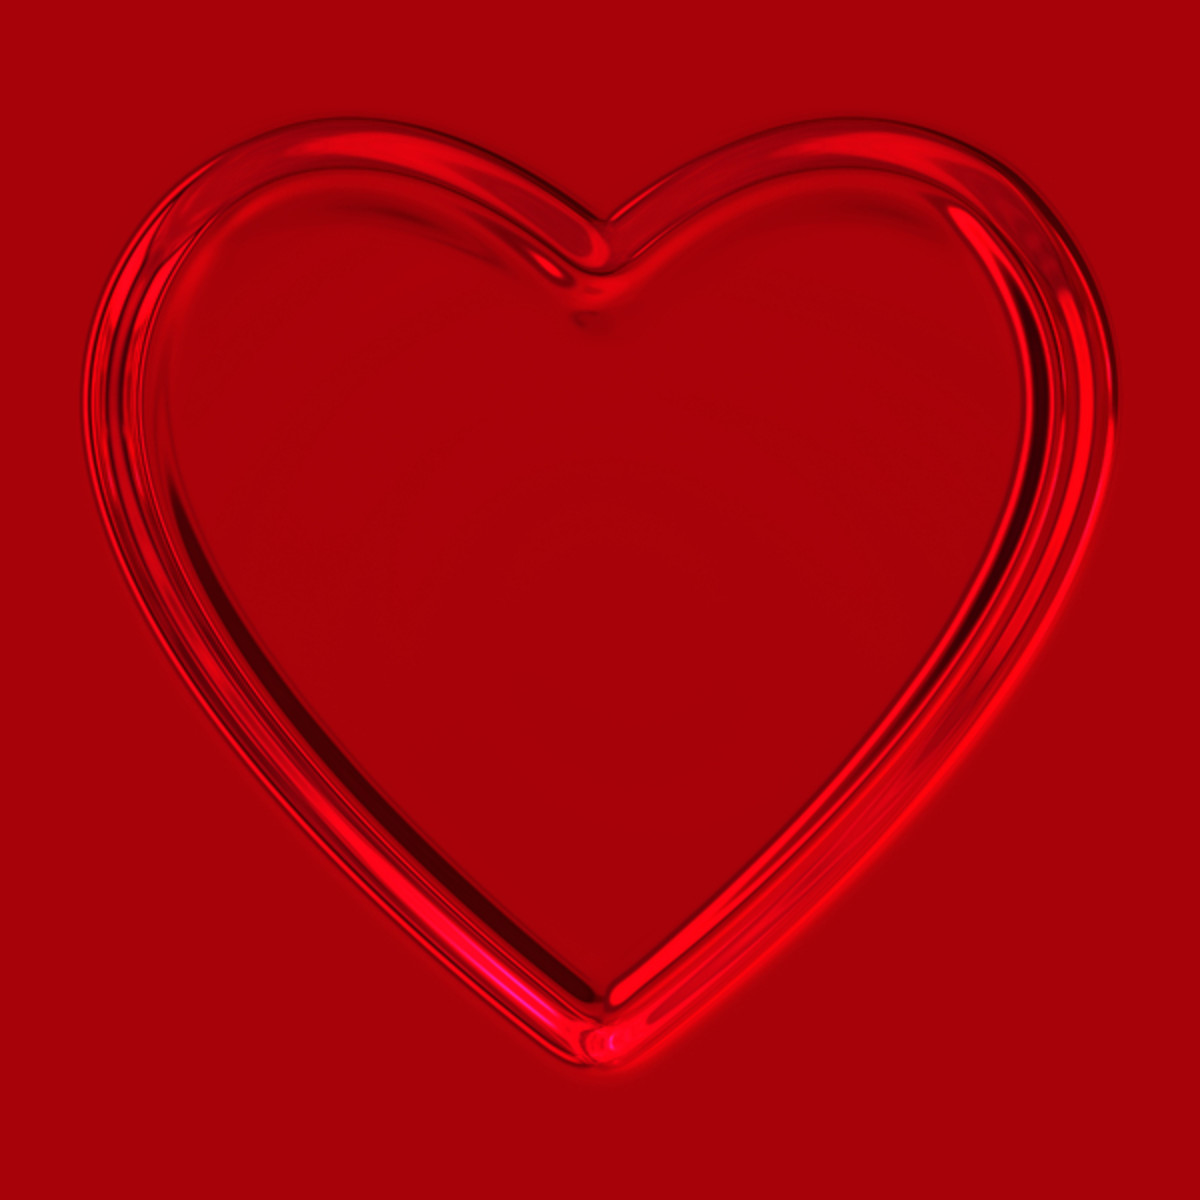 Glowing Red Heart